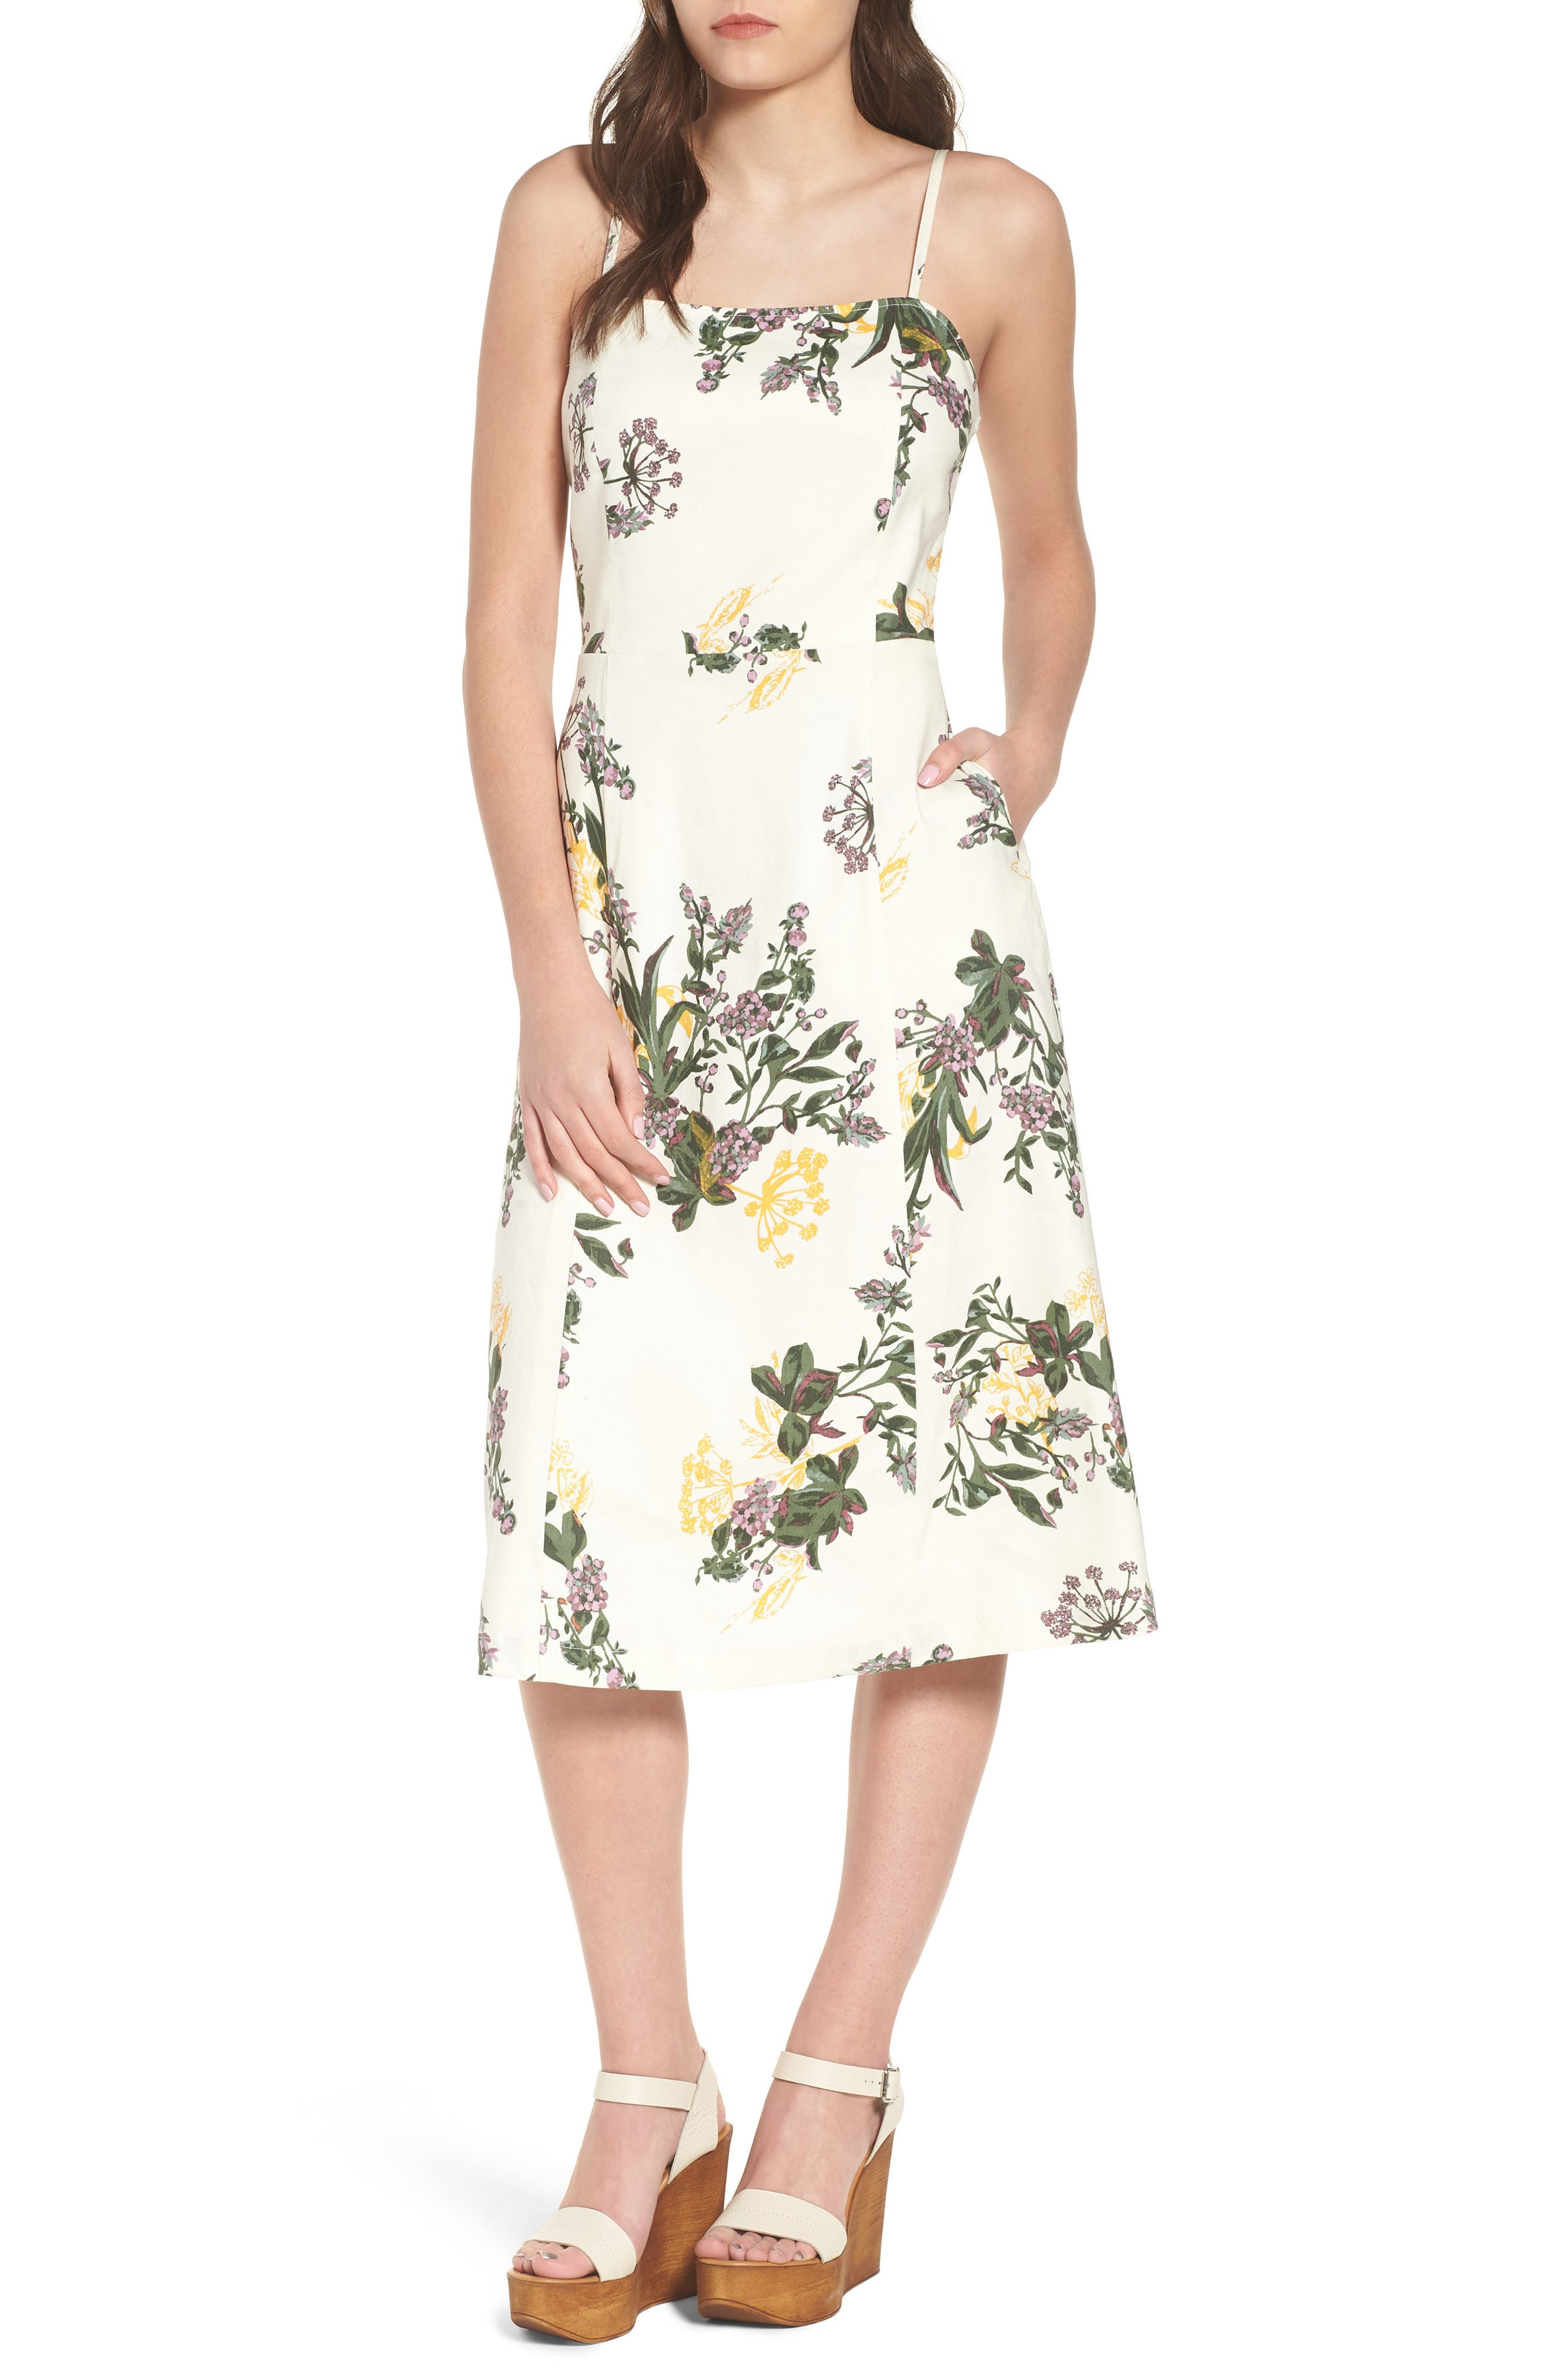 Floral Print Midi Dress,                             Main thumbnail 1, color,                             Ivory Ghost Floral